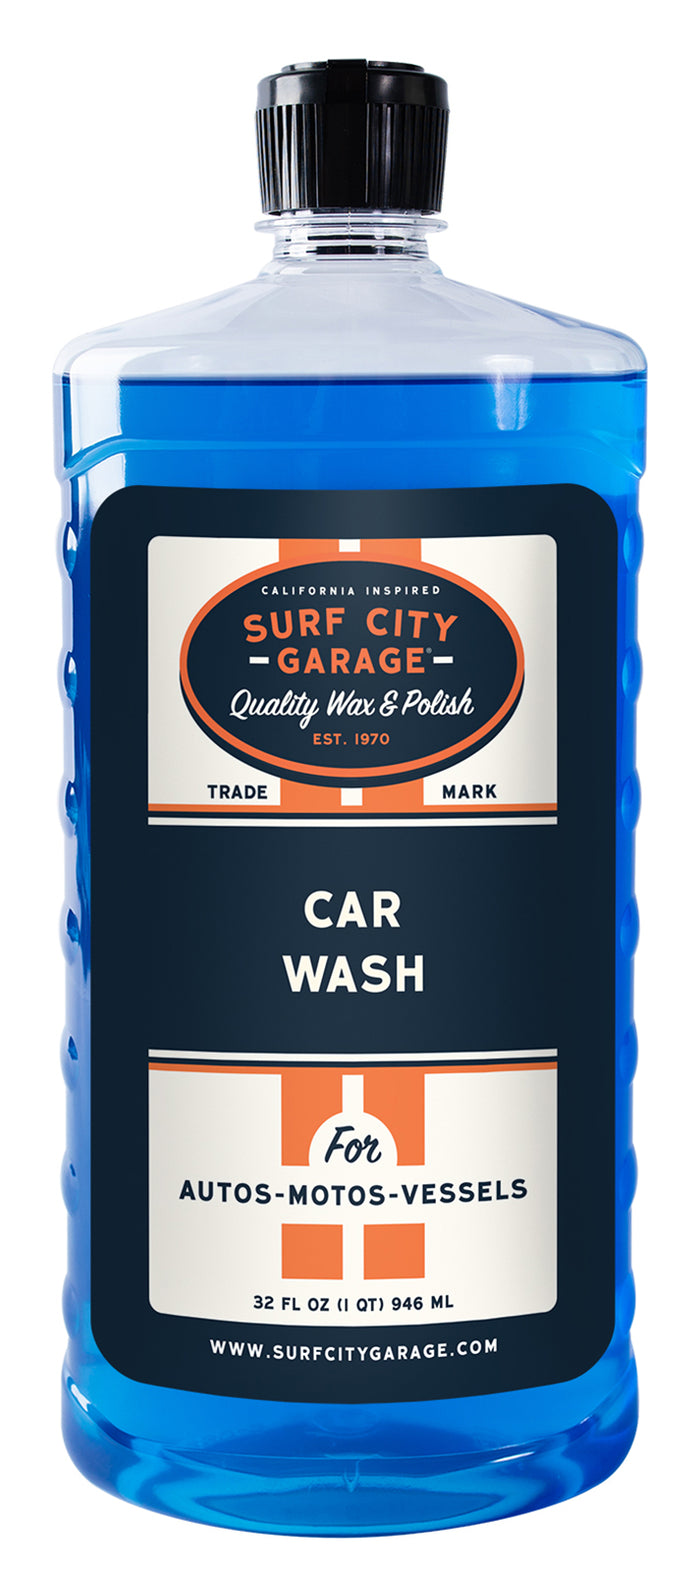 NEW LOOK! Pacific Blue® Wash & Wax